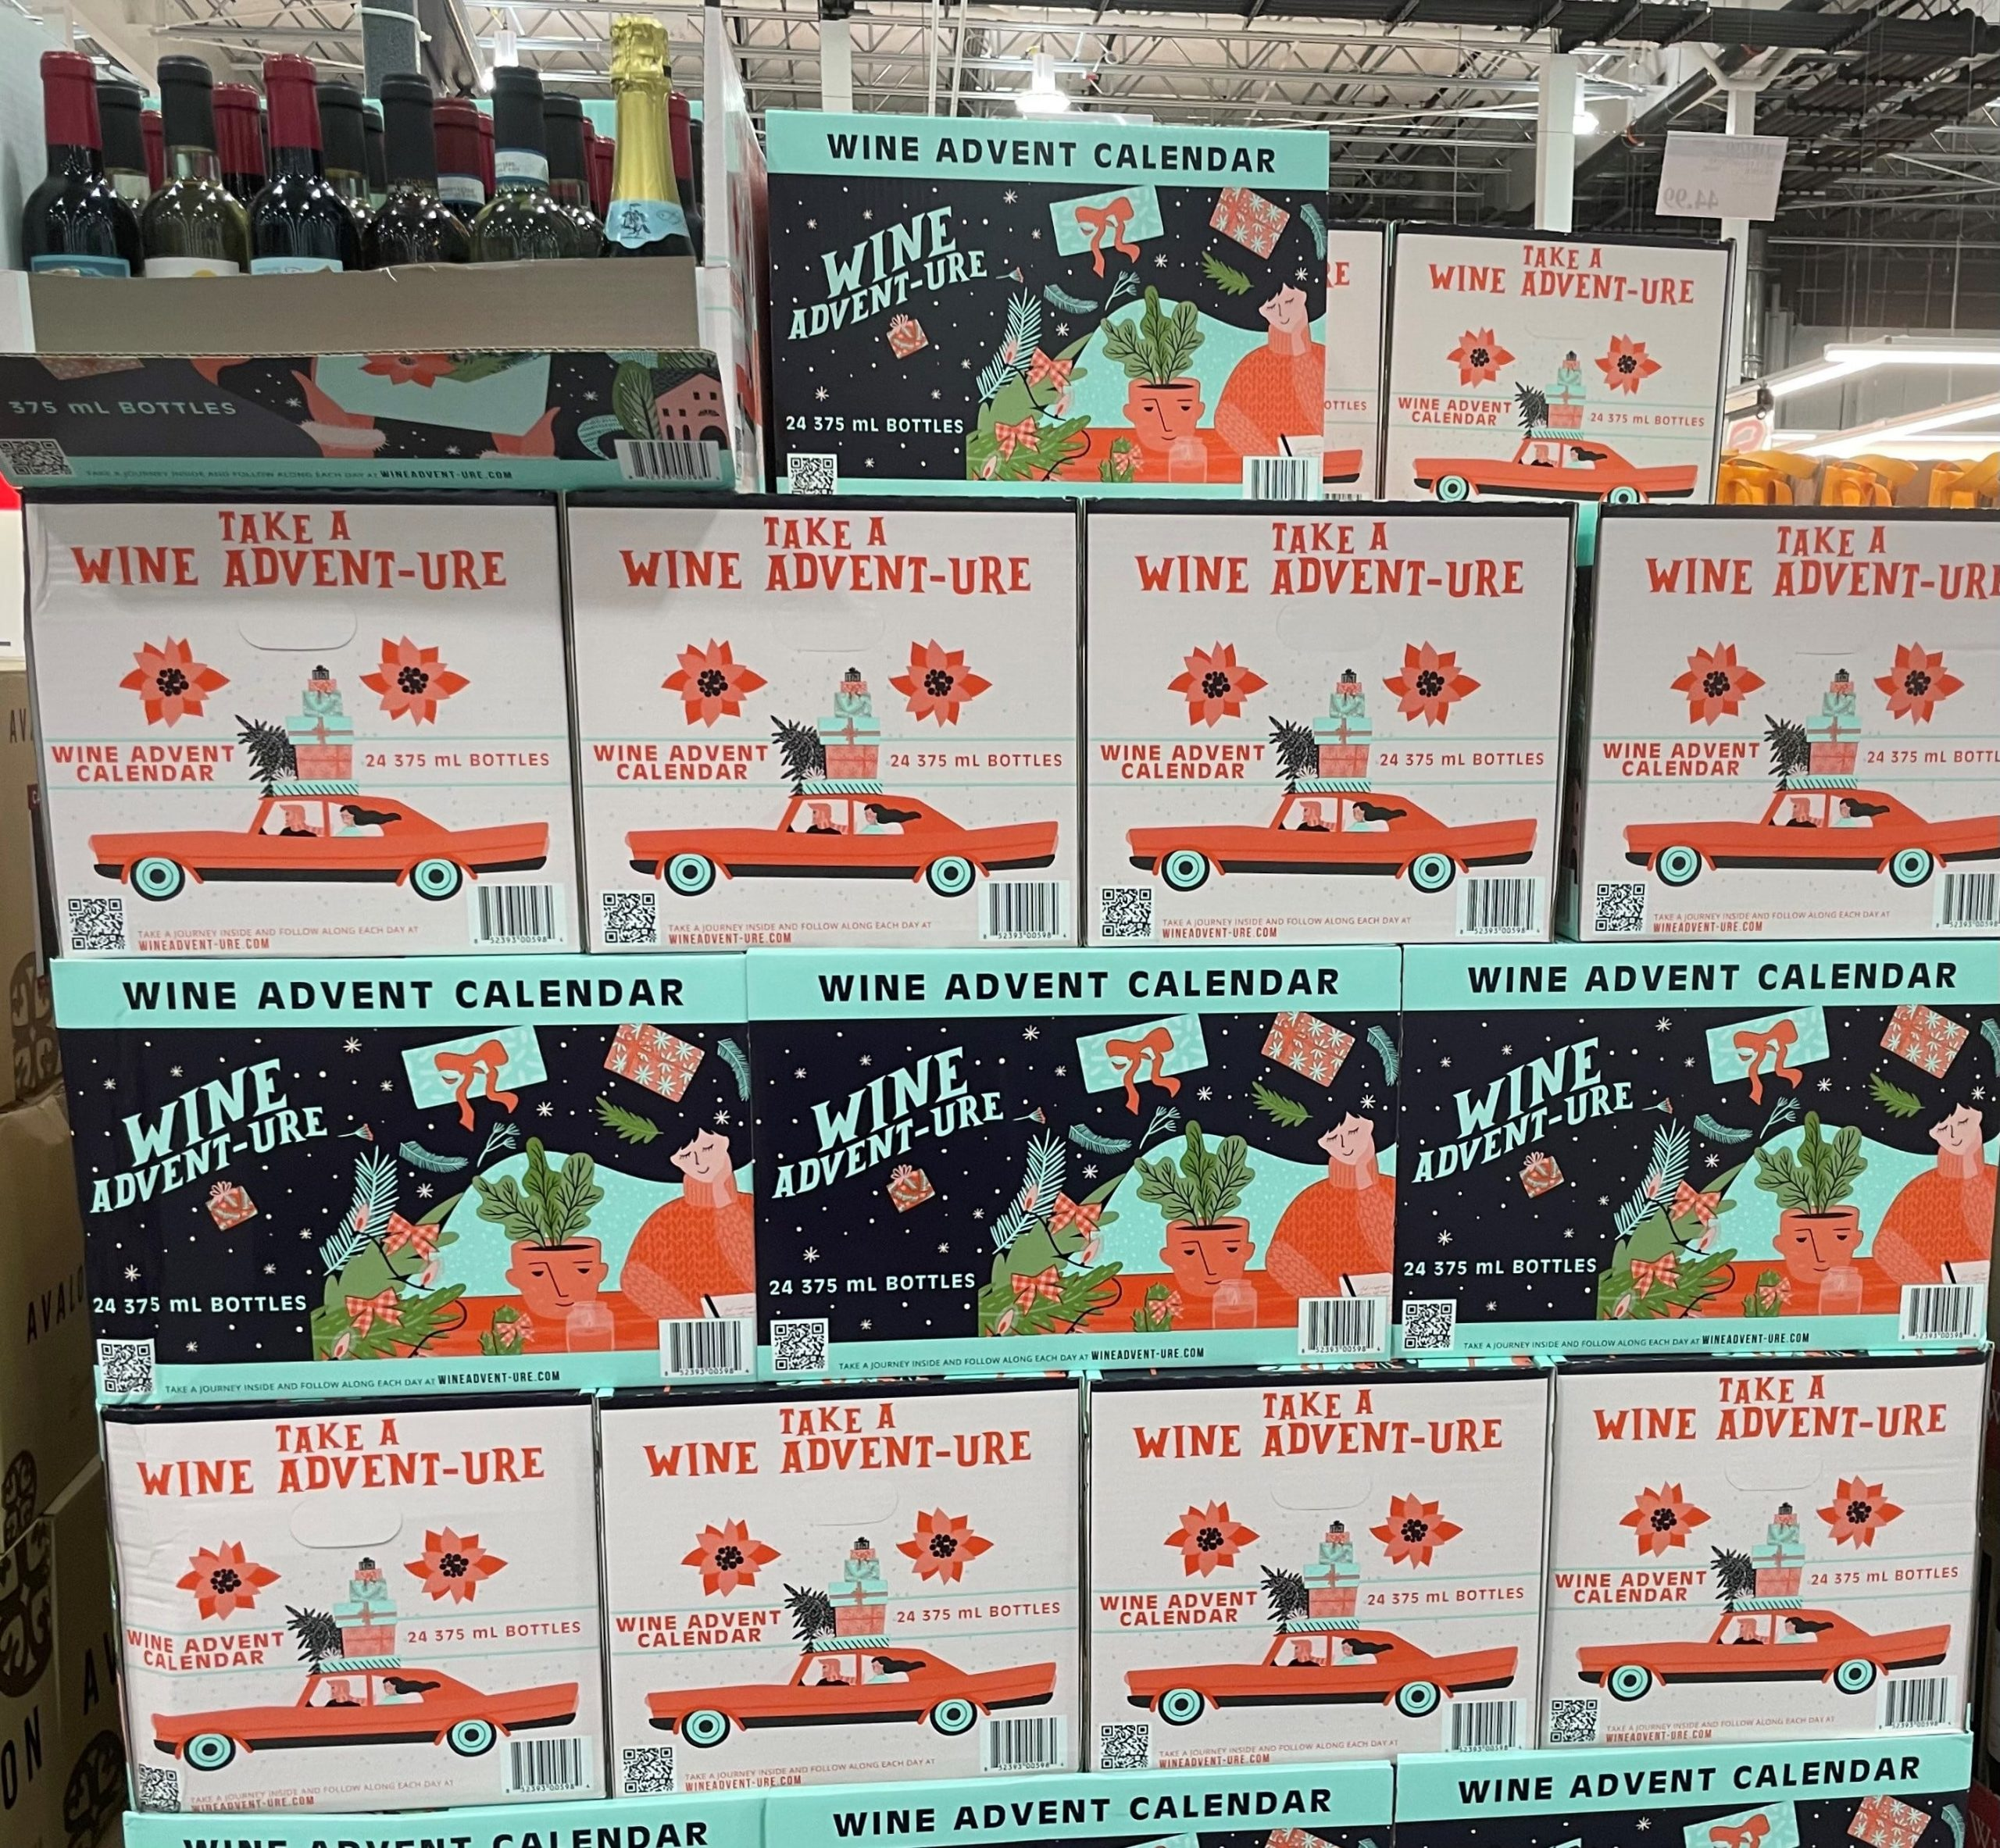 Costco Advent calendars 2021: Raise a glass, wine and beer calendars back at clubs